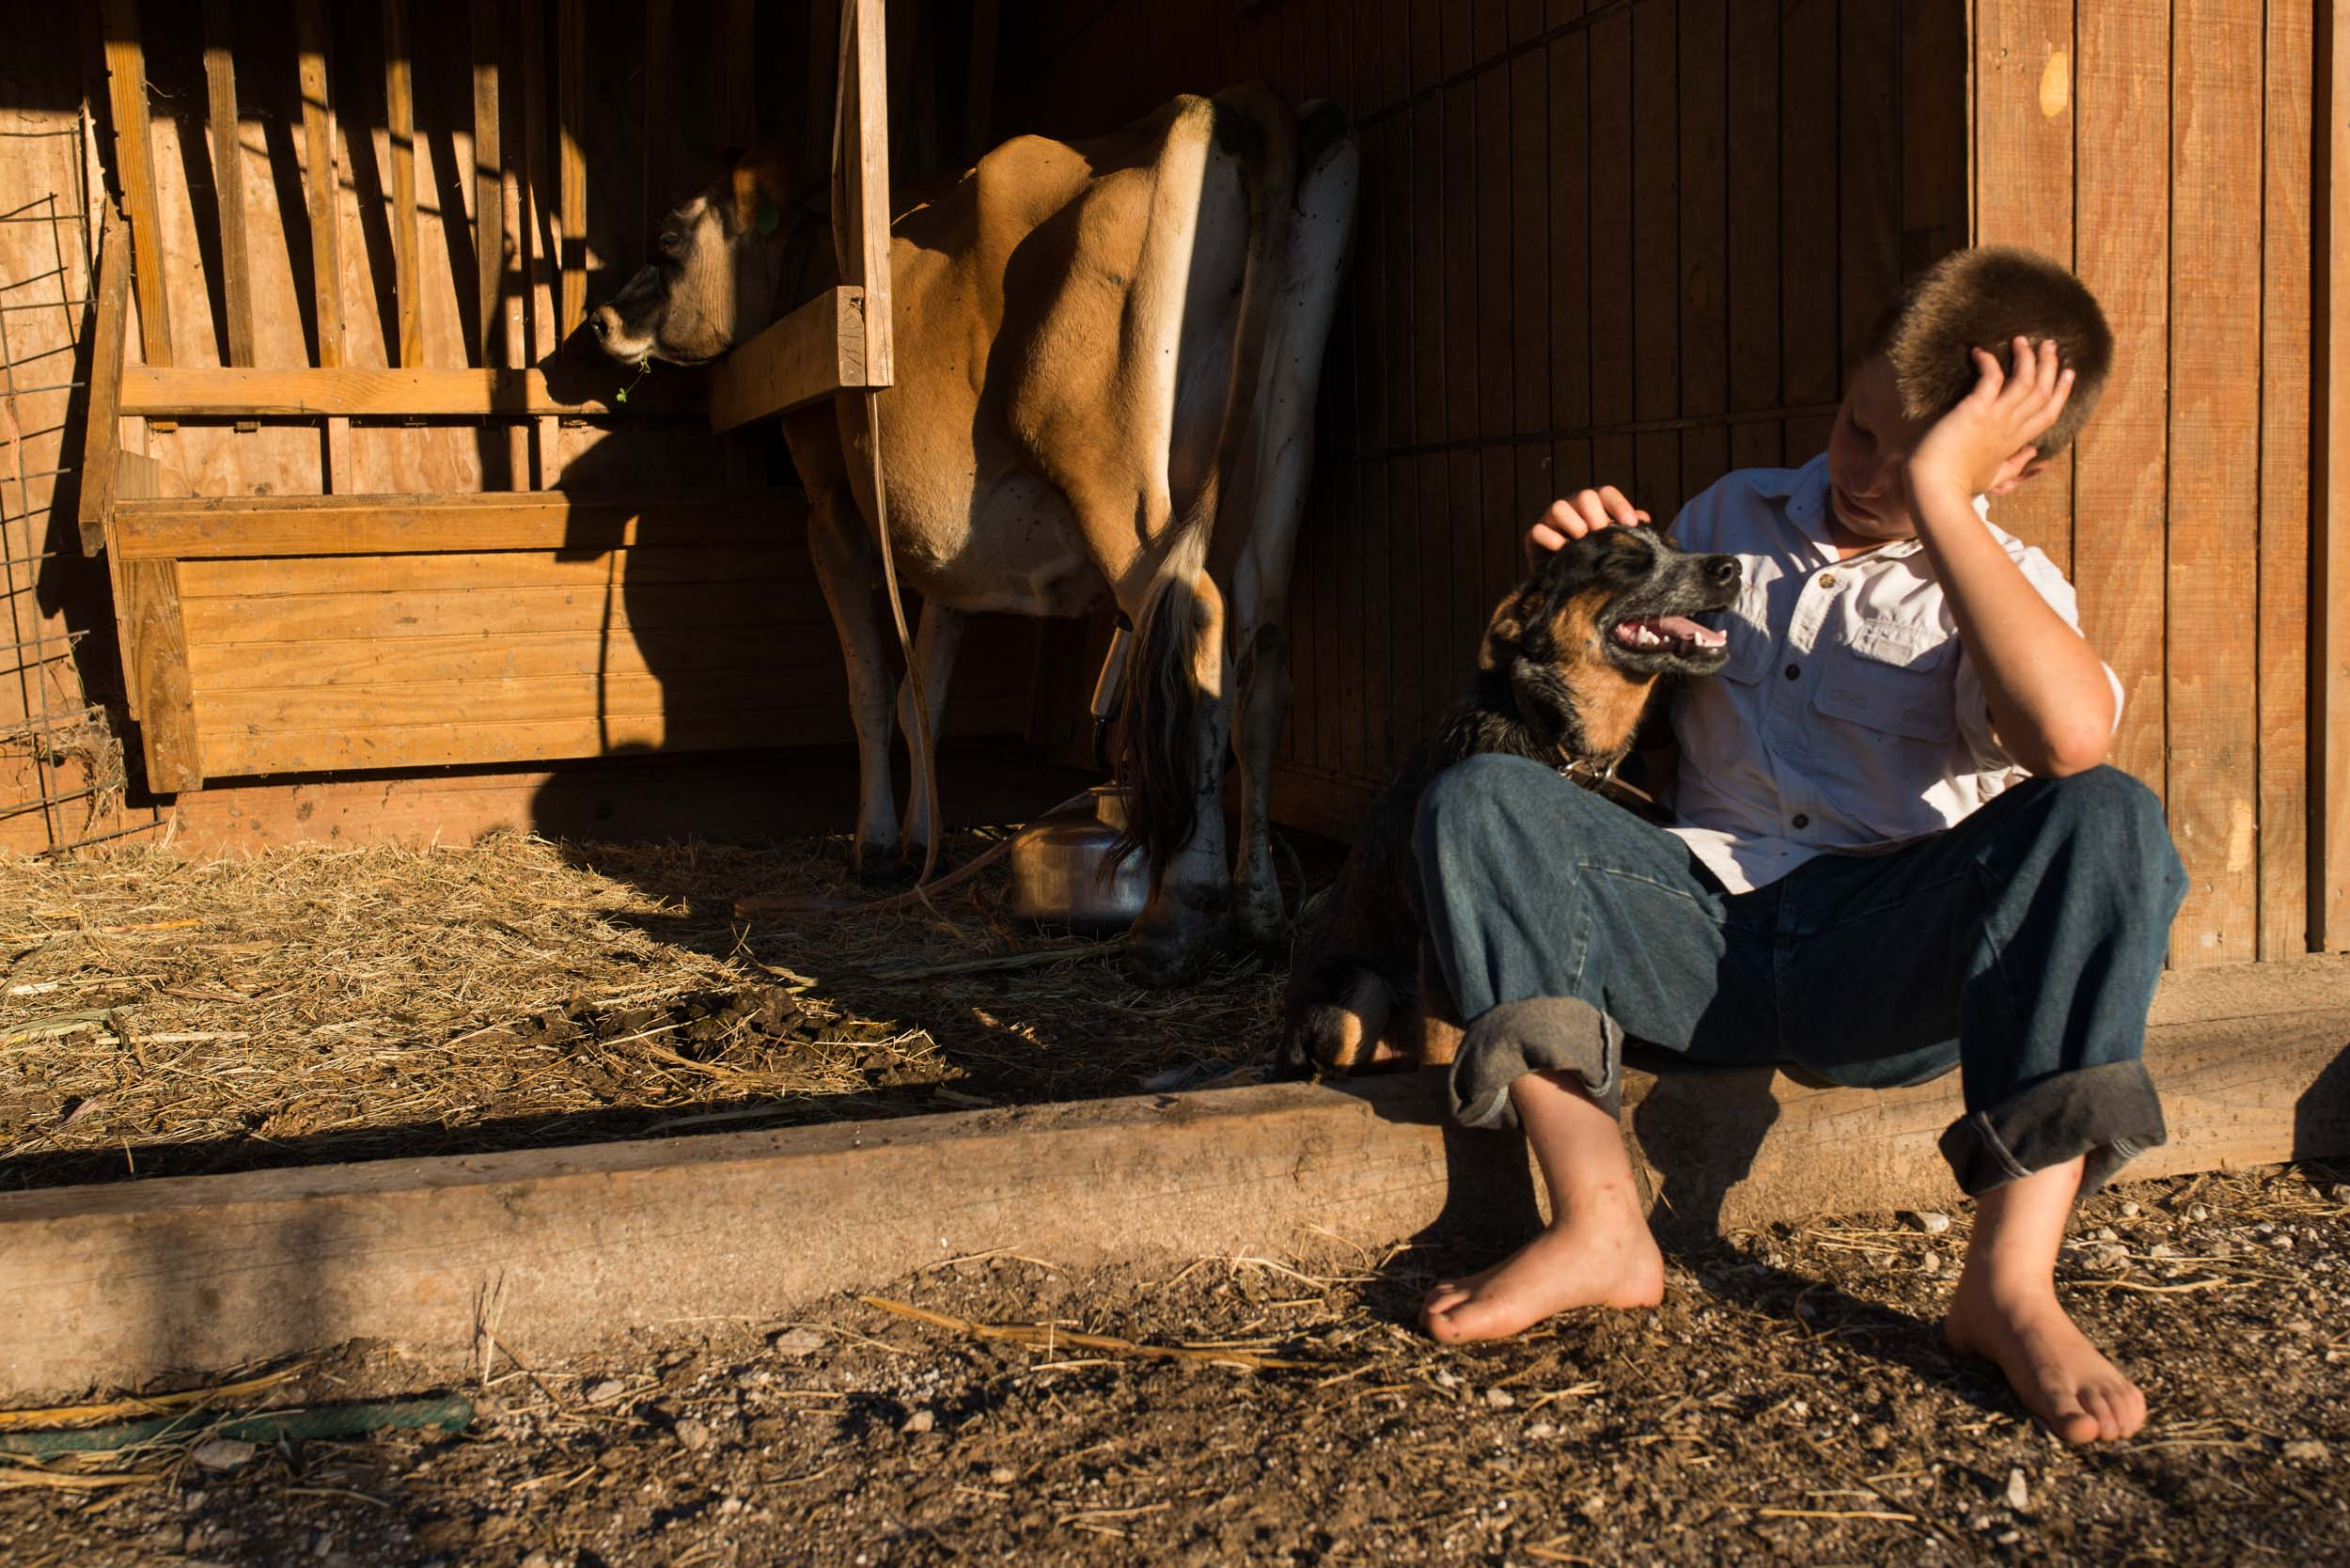 """Austin waits patiently with """"Blue,"""" his cow dog, while an automatic milking-machine pumps their milk cow in the barn. Austin has been training """"Blue"""" how to herd cattle on command."""